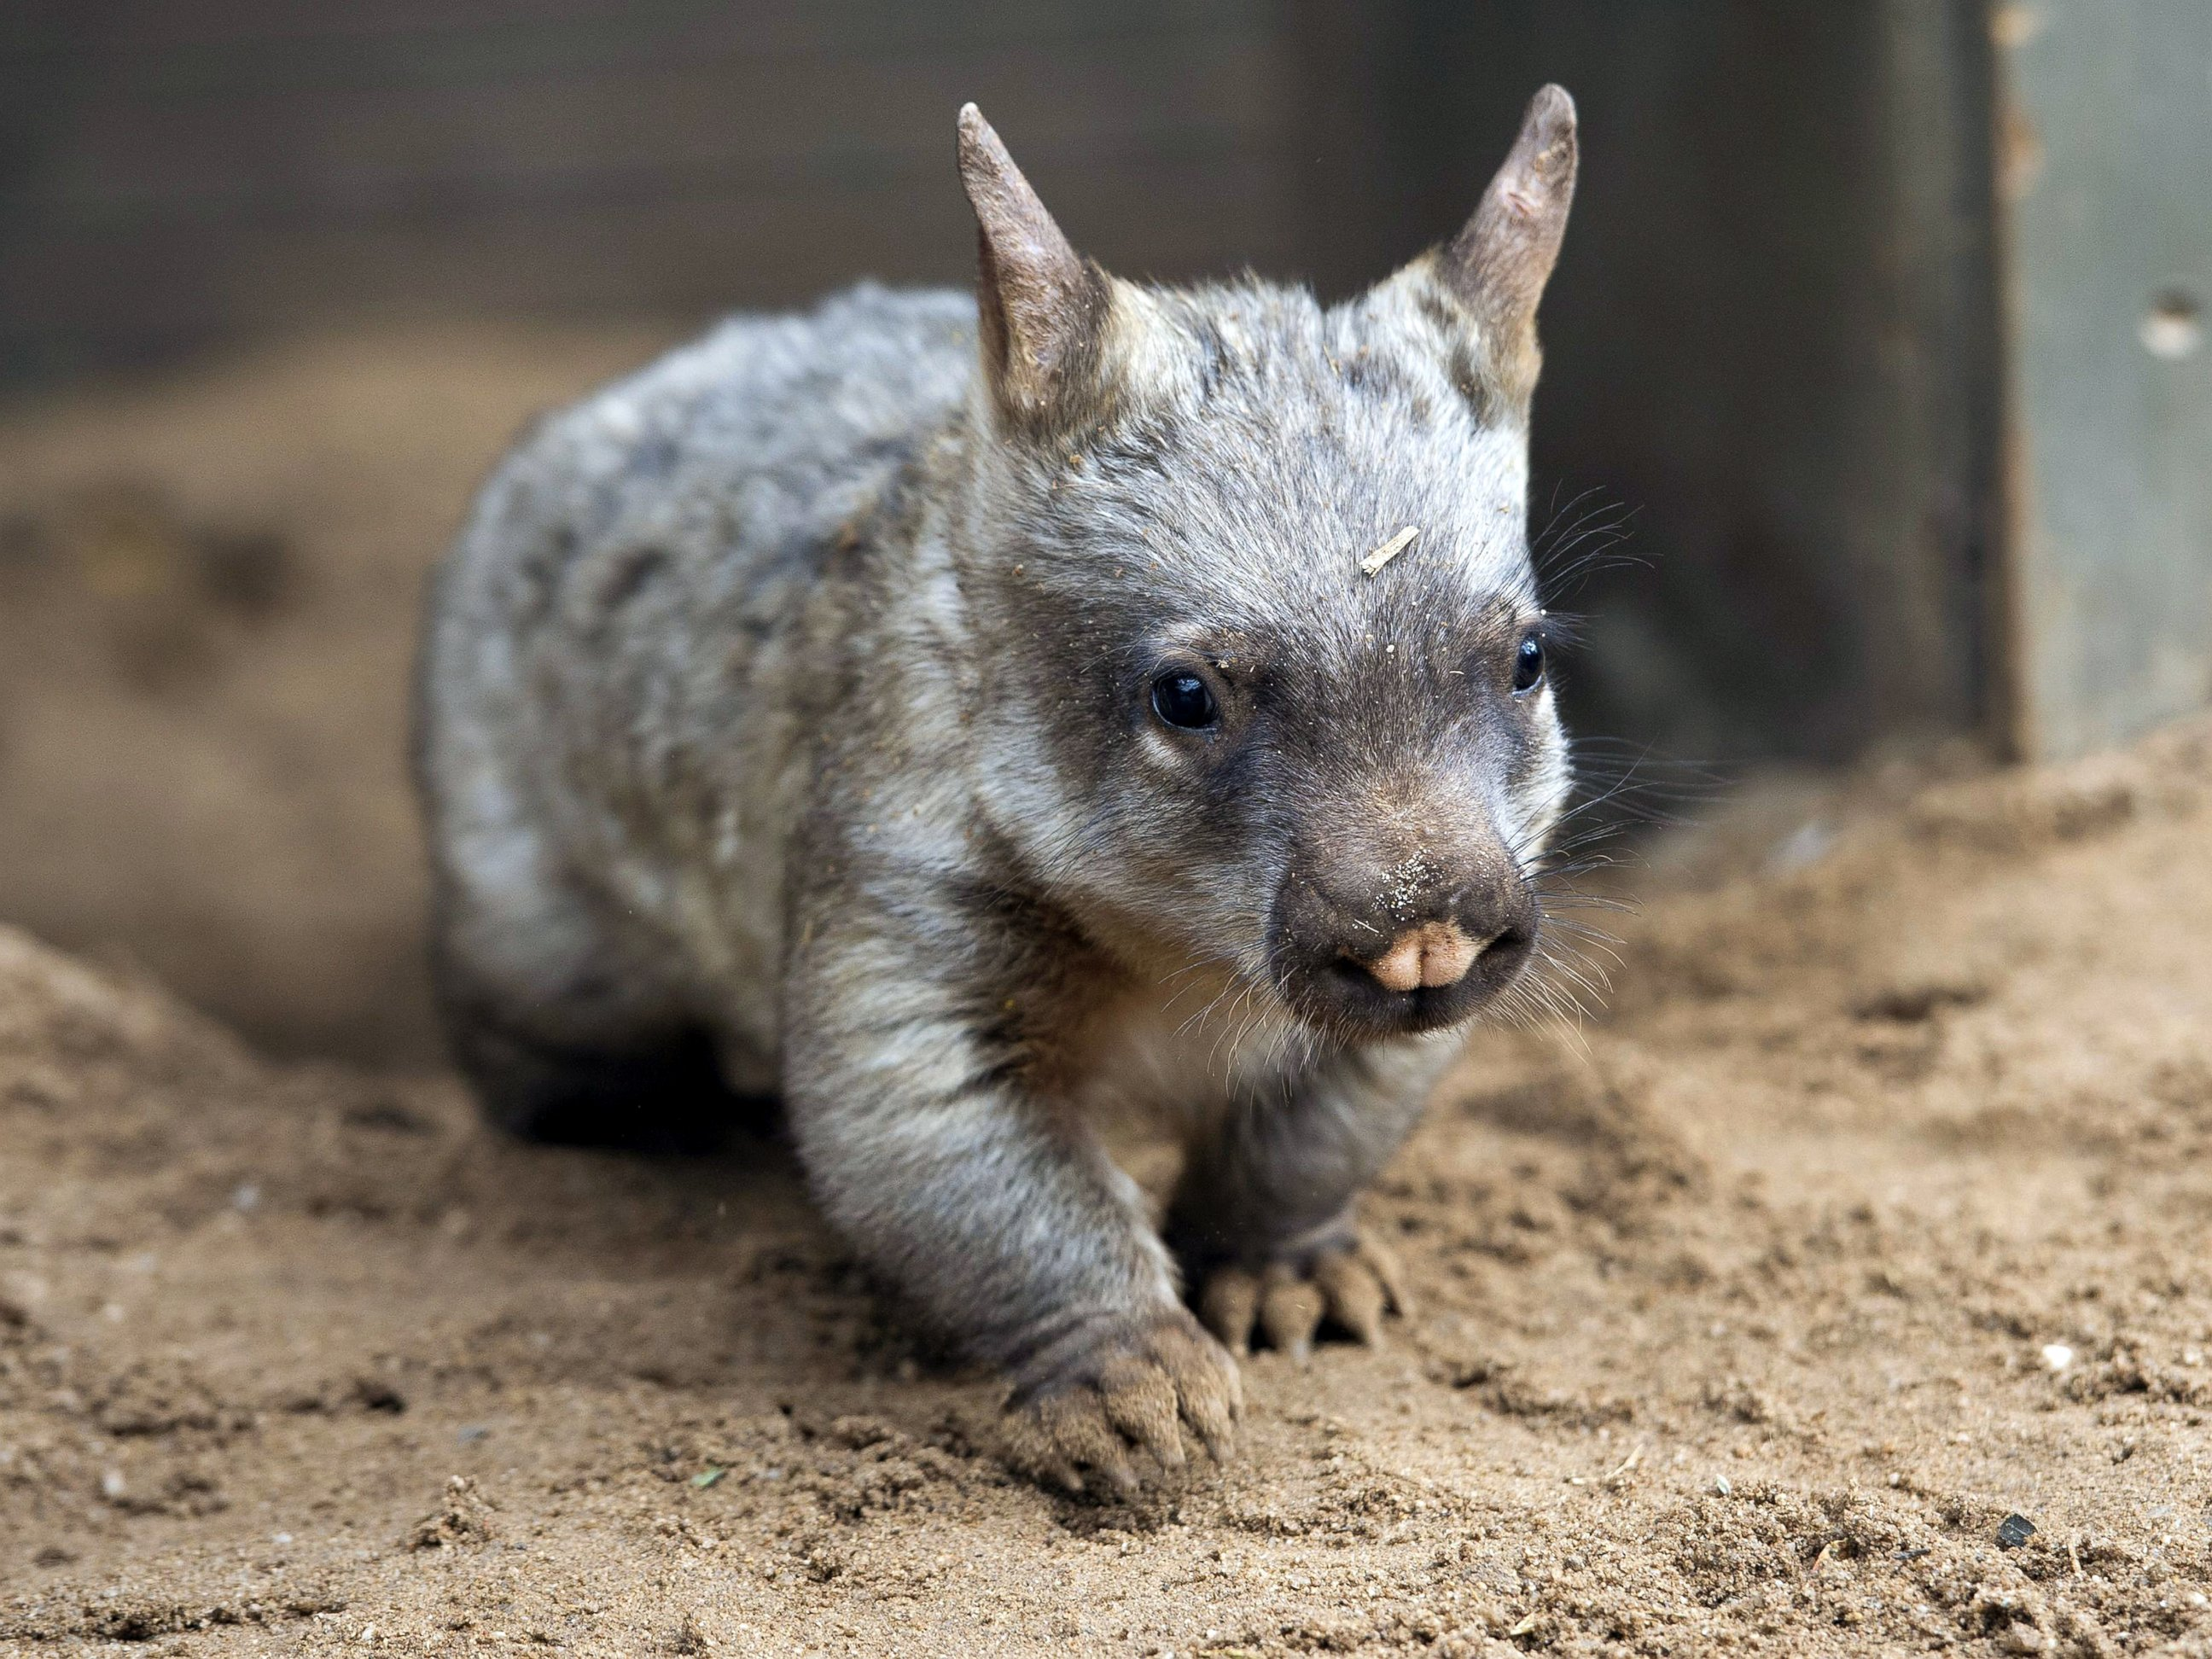 Meet Jedda, the Baby Wombat